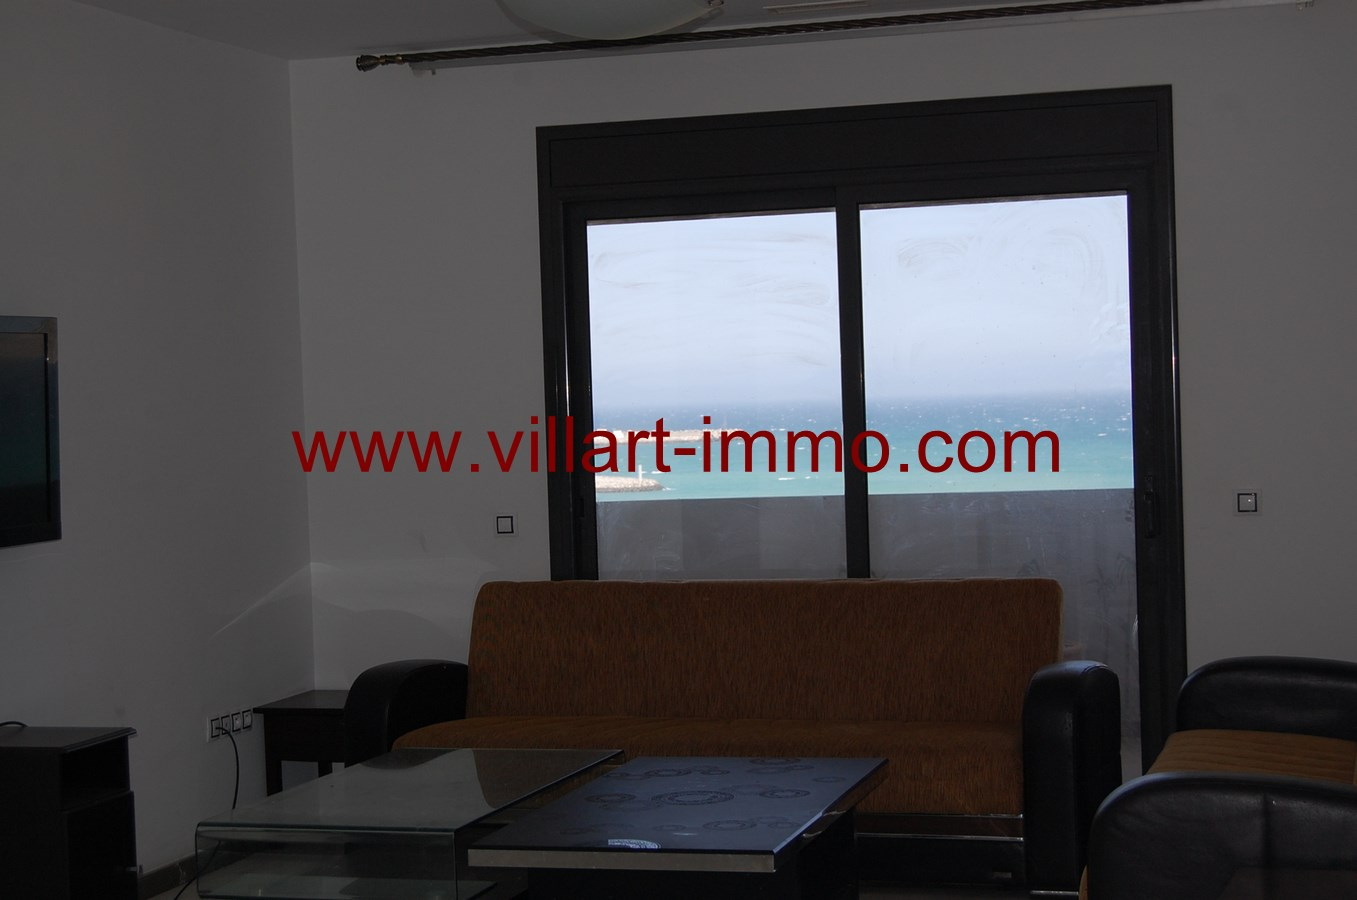 1-a-vendre-appartement-tanger-quartier-playa-salon-va433-villart-immo